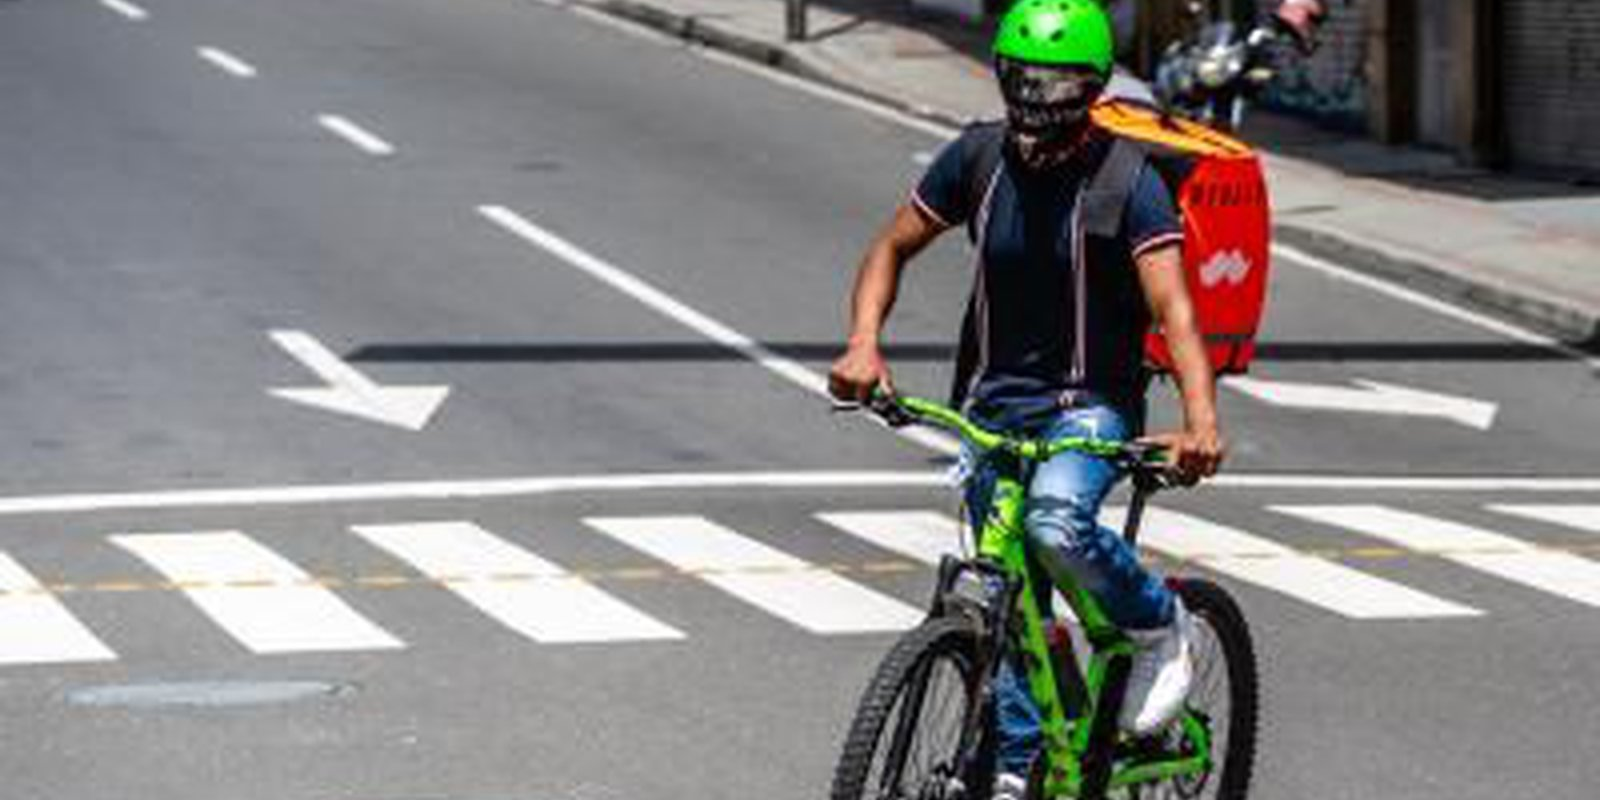 A delivery courier wearing a protective mask rides through Medellin, Colombia, on 24 July 2020.